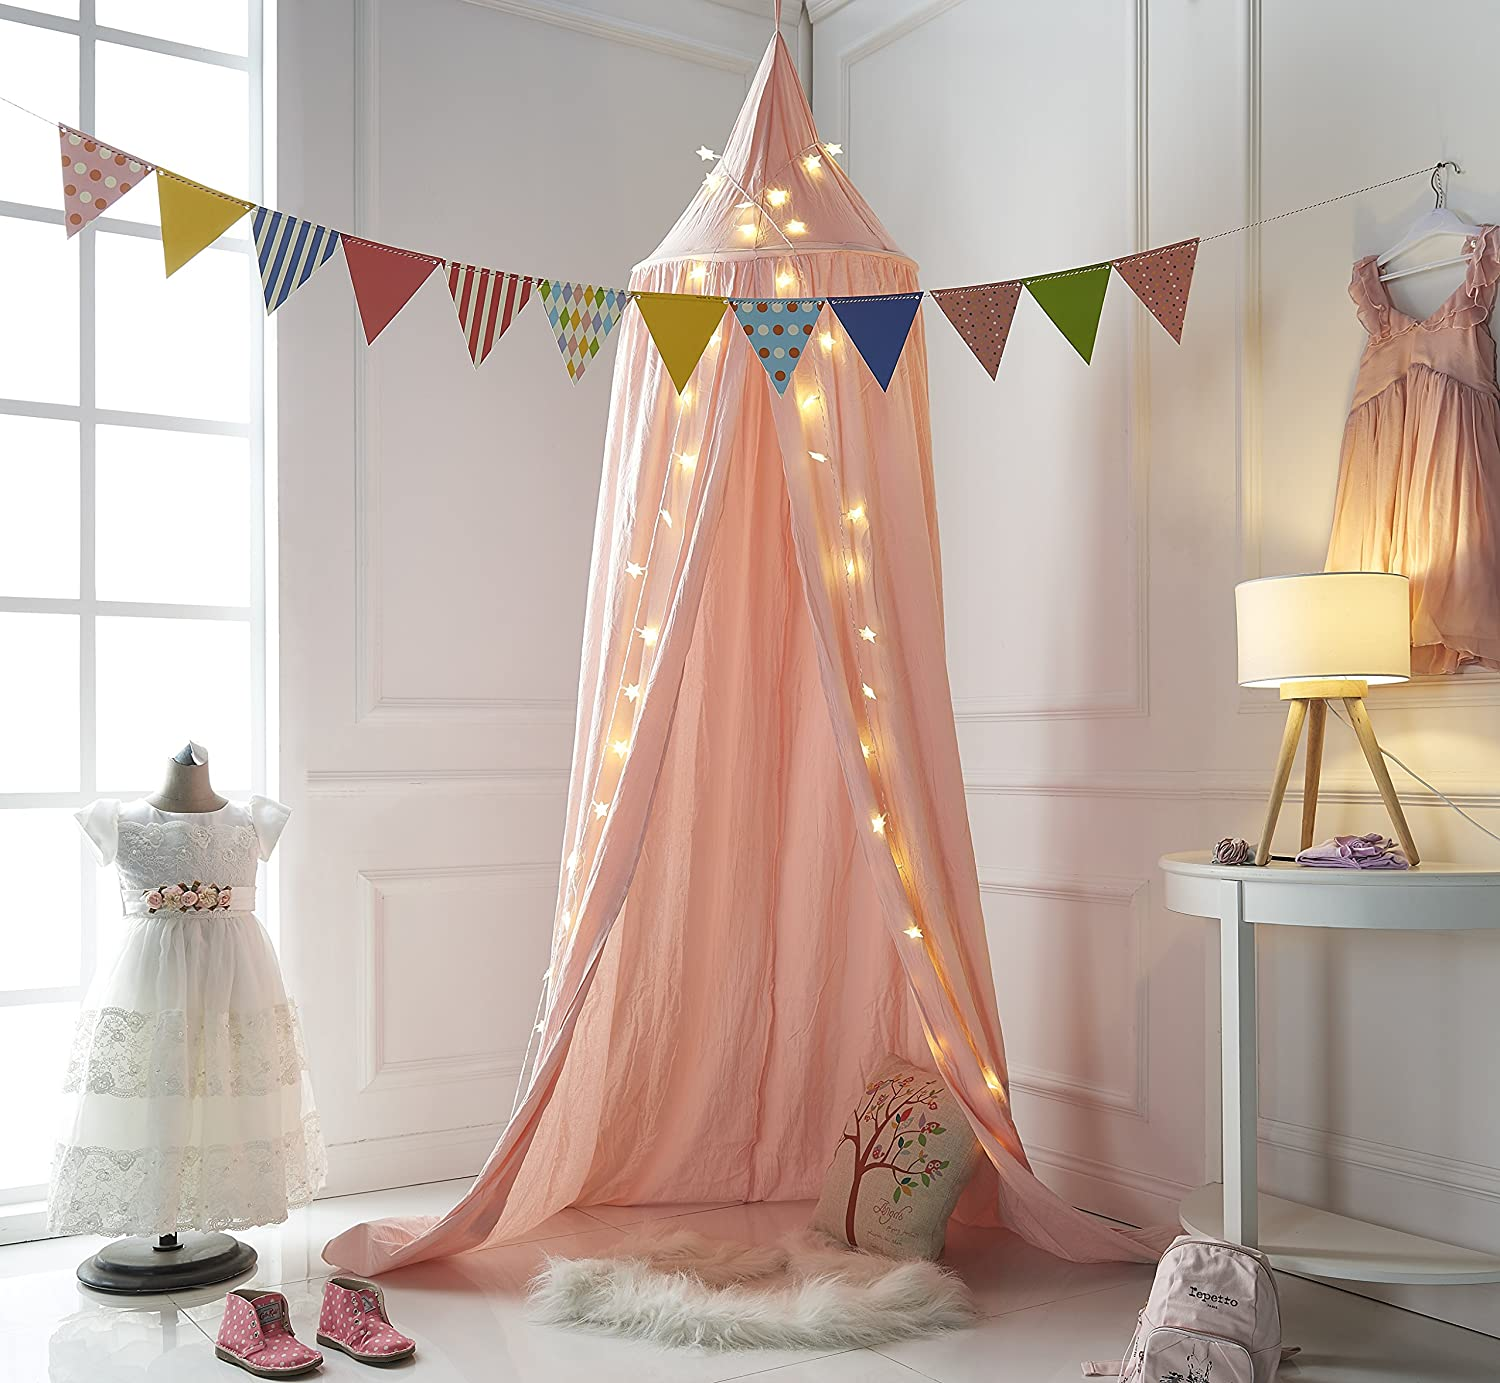 Truedays Dome Princess Bed Canopy Mosquito Net Children Room Decorate (White)